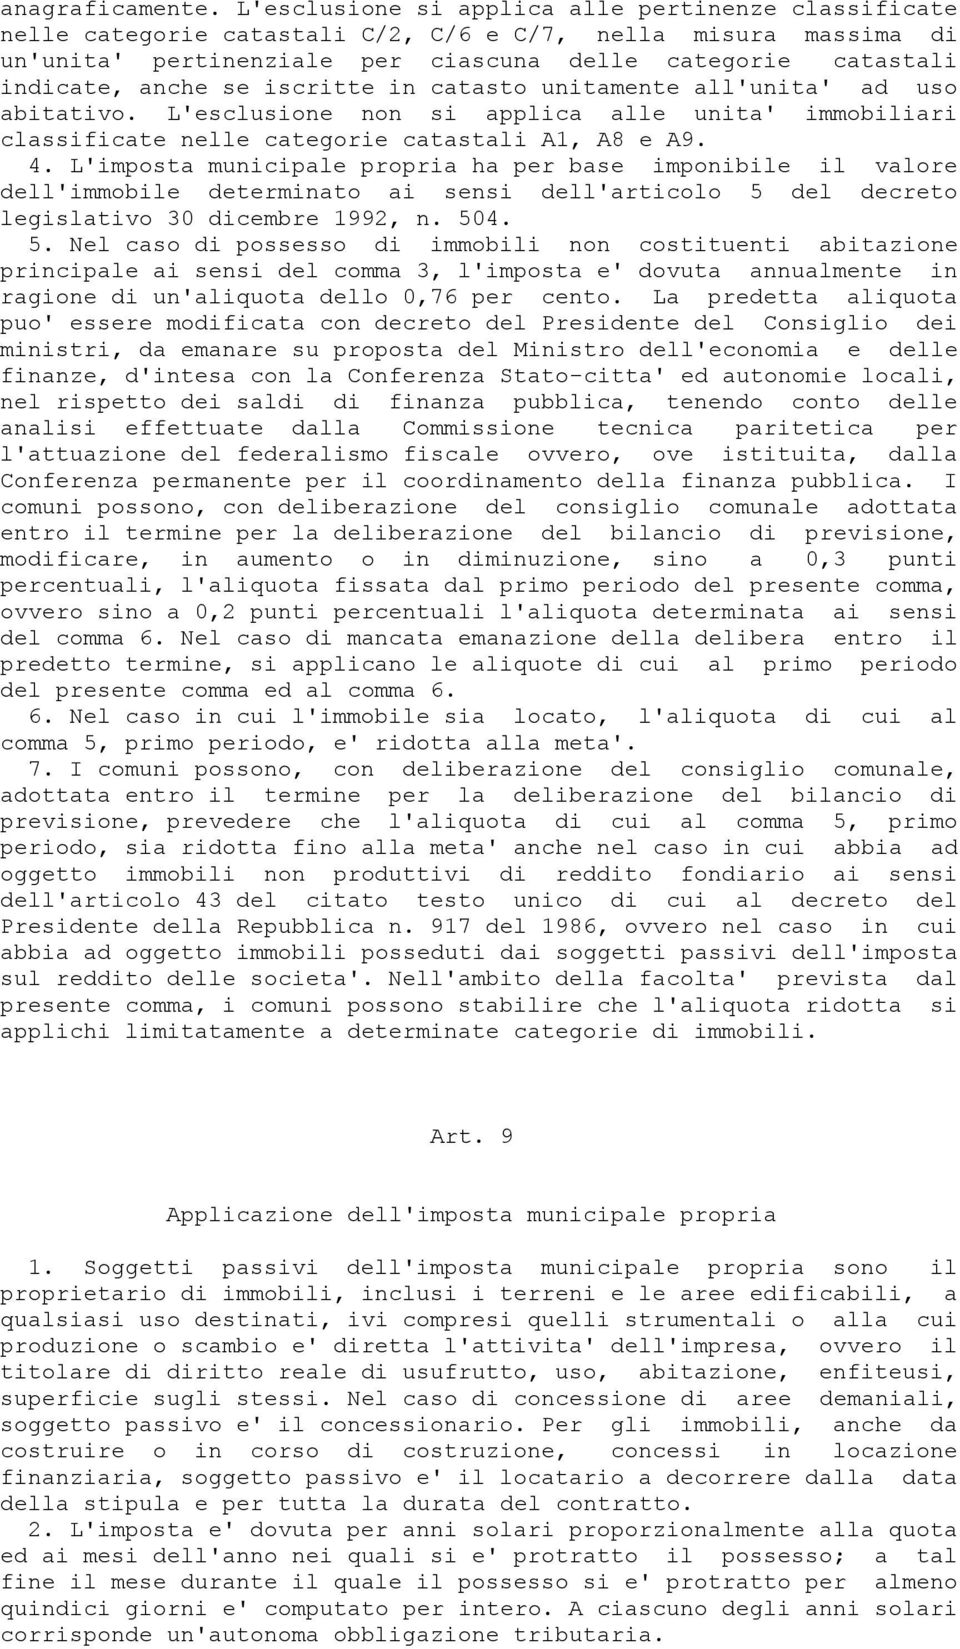 se iscritte in catasto unitamente all'unita' ad uso abitativo. L'esclusione non si applica alle unita' immobiliari classificate nelle categorie catastali A1, A8 e A9. 4.